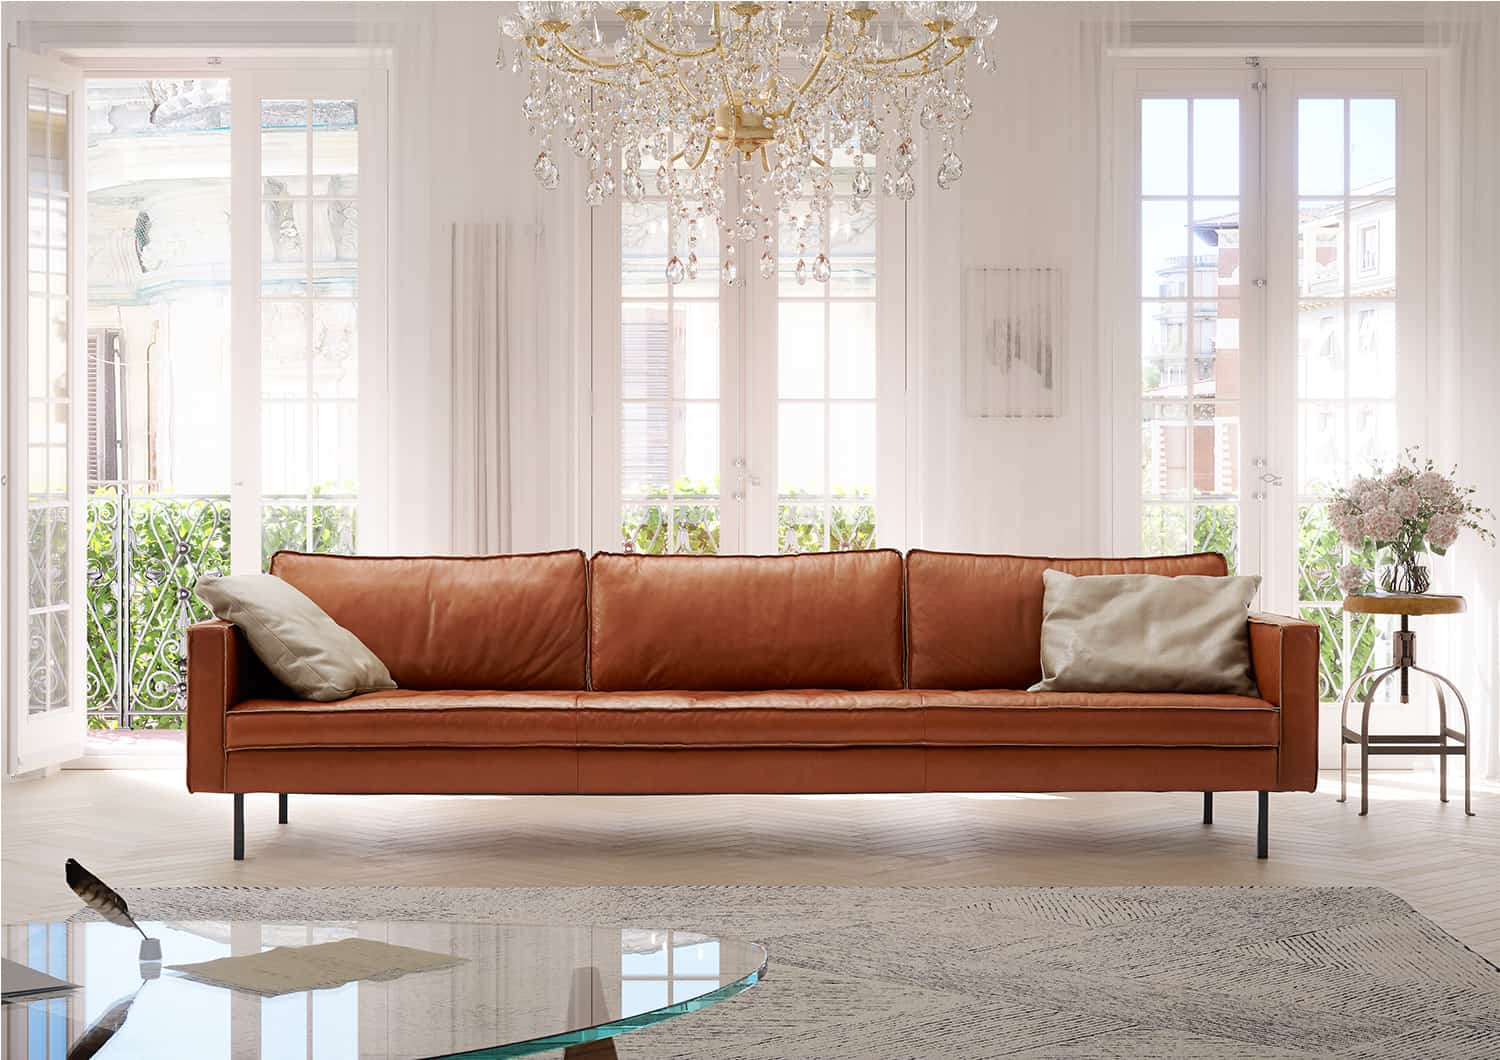 Design Bank Machalke.Sofas Made In Germany Tommy M